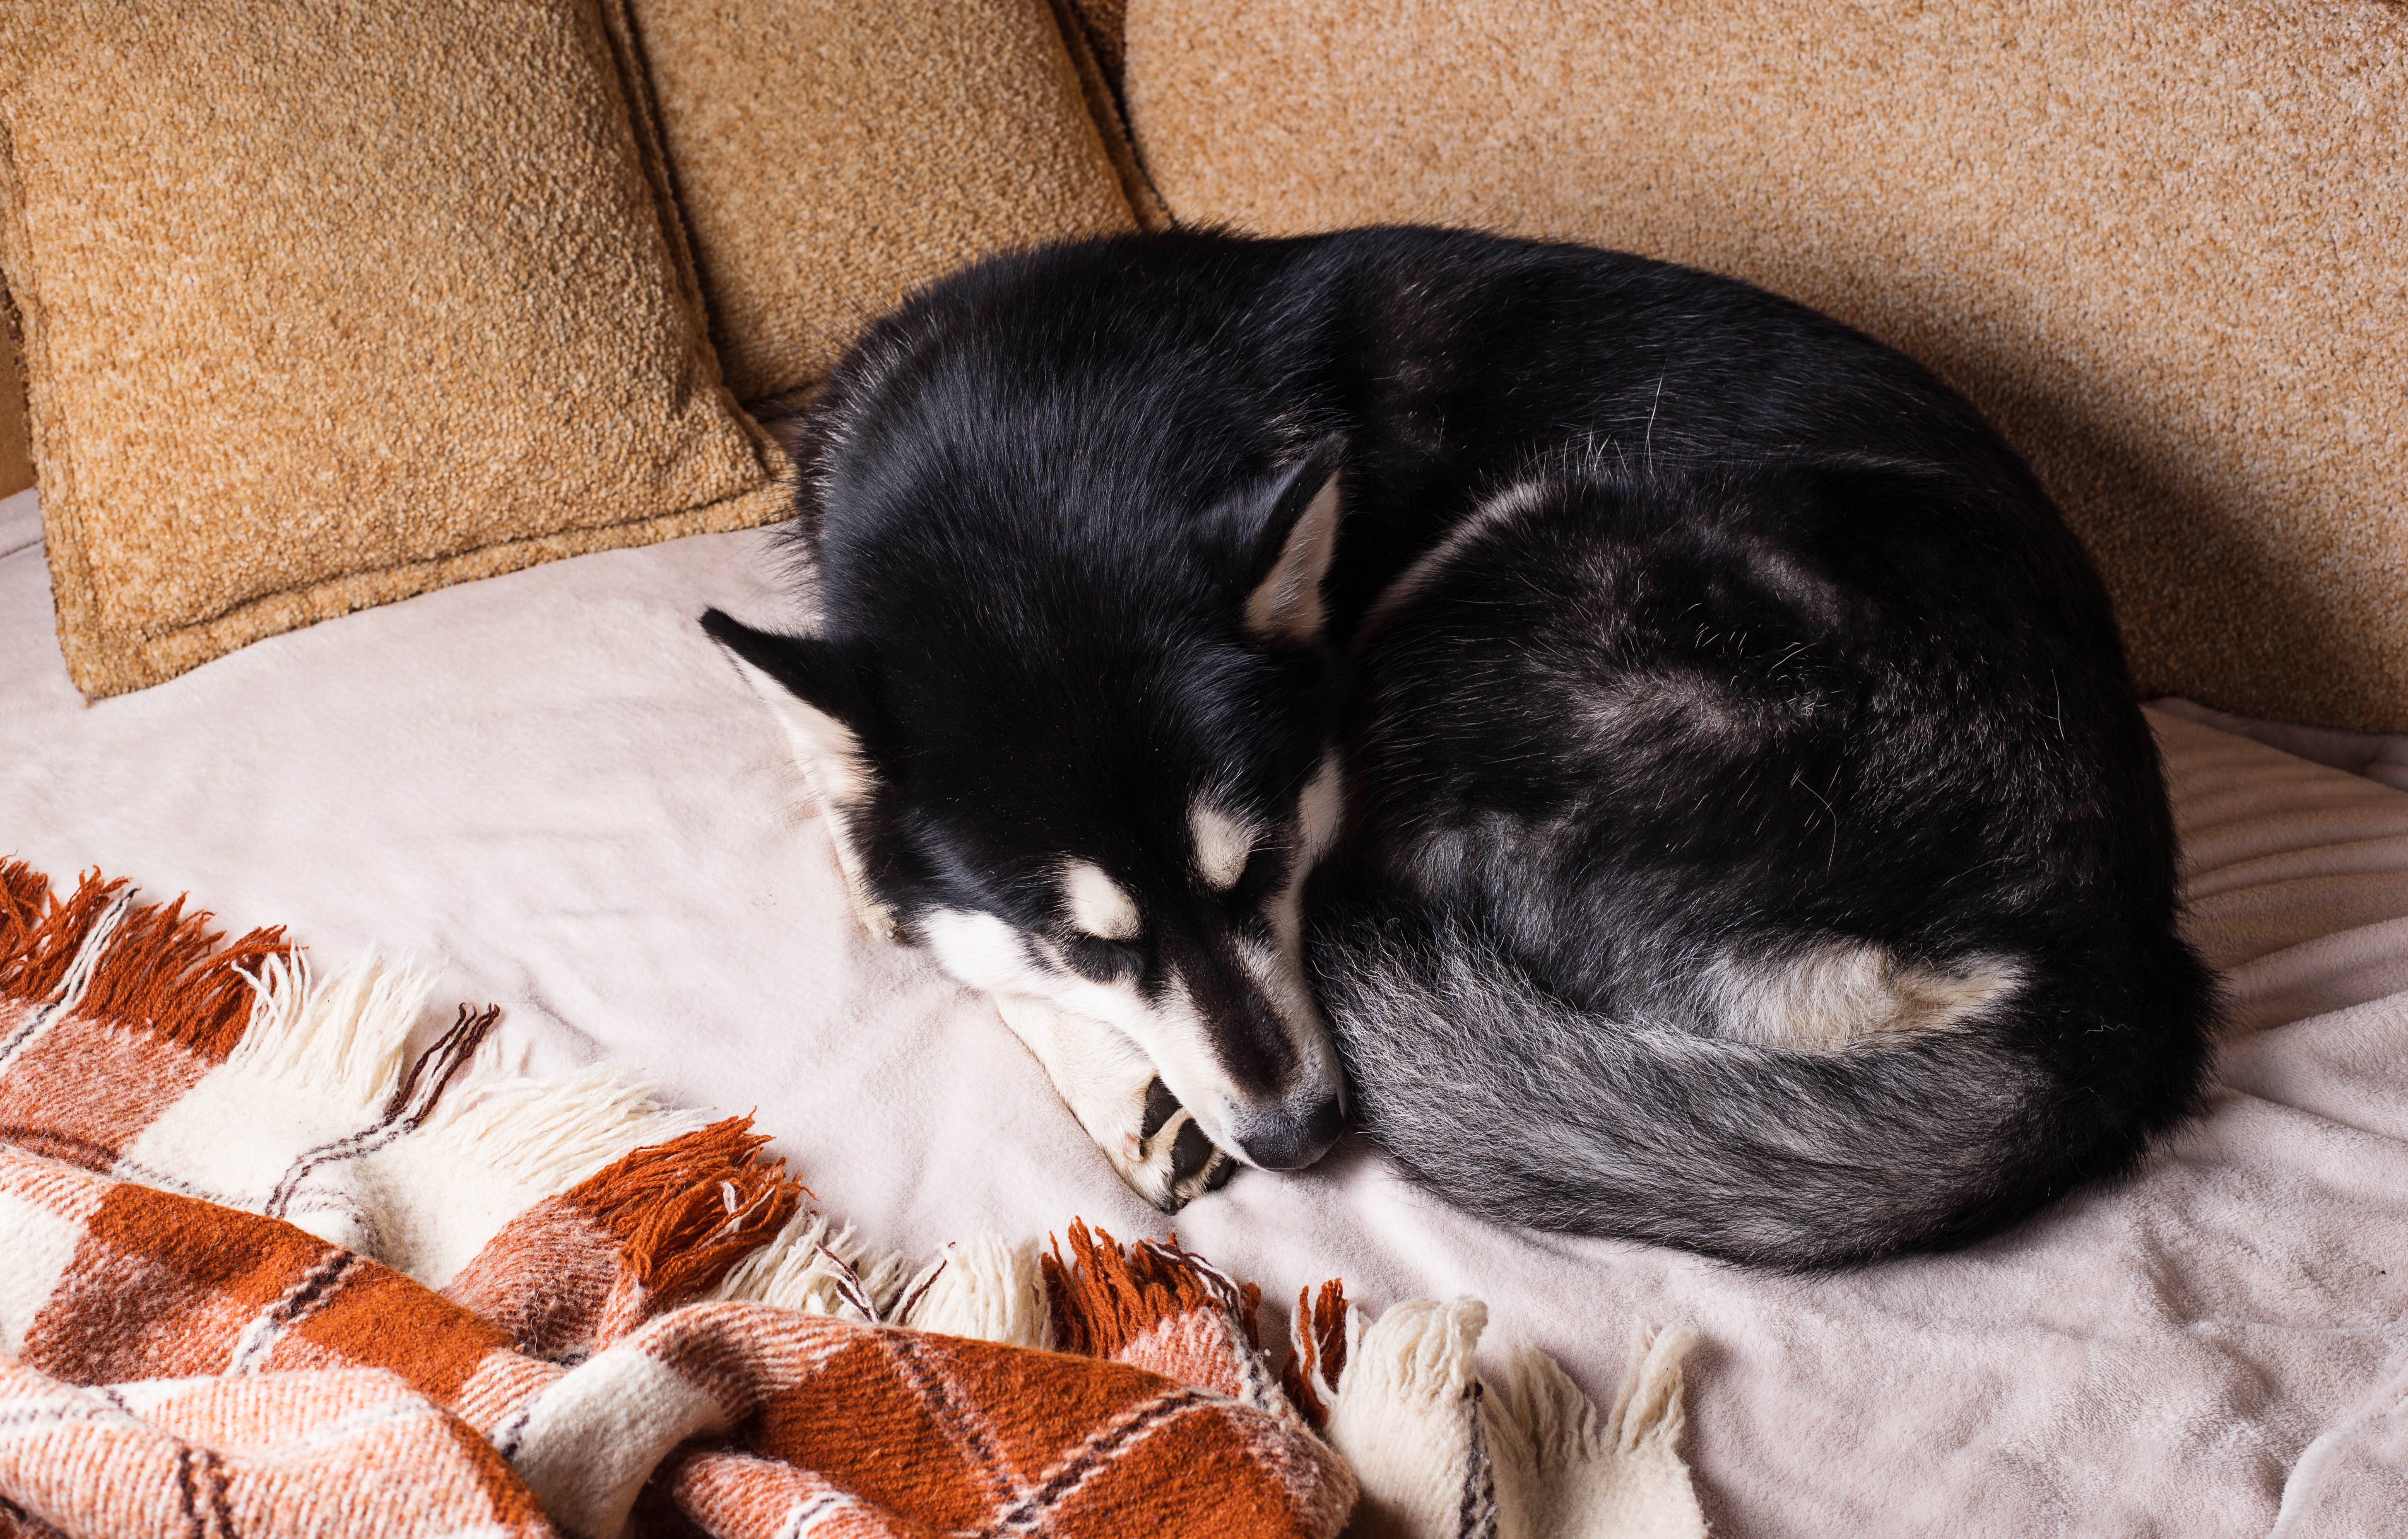 Cute dog sleeping on a bed under a plaid